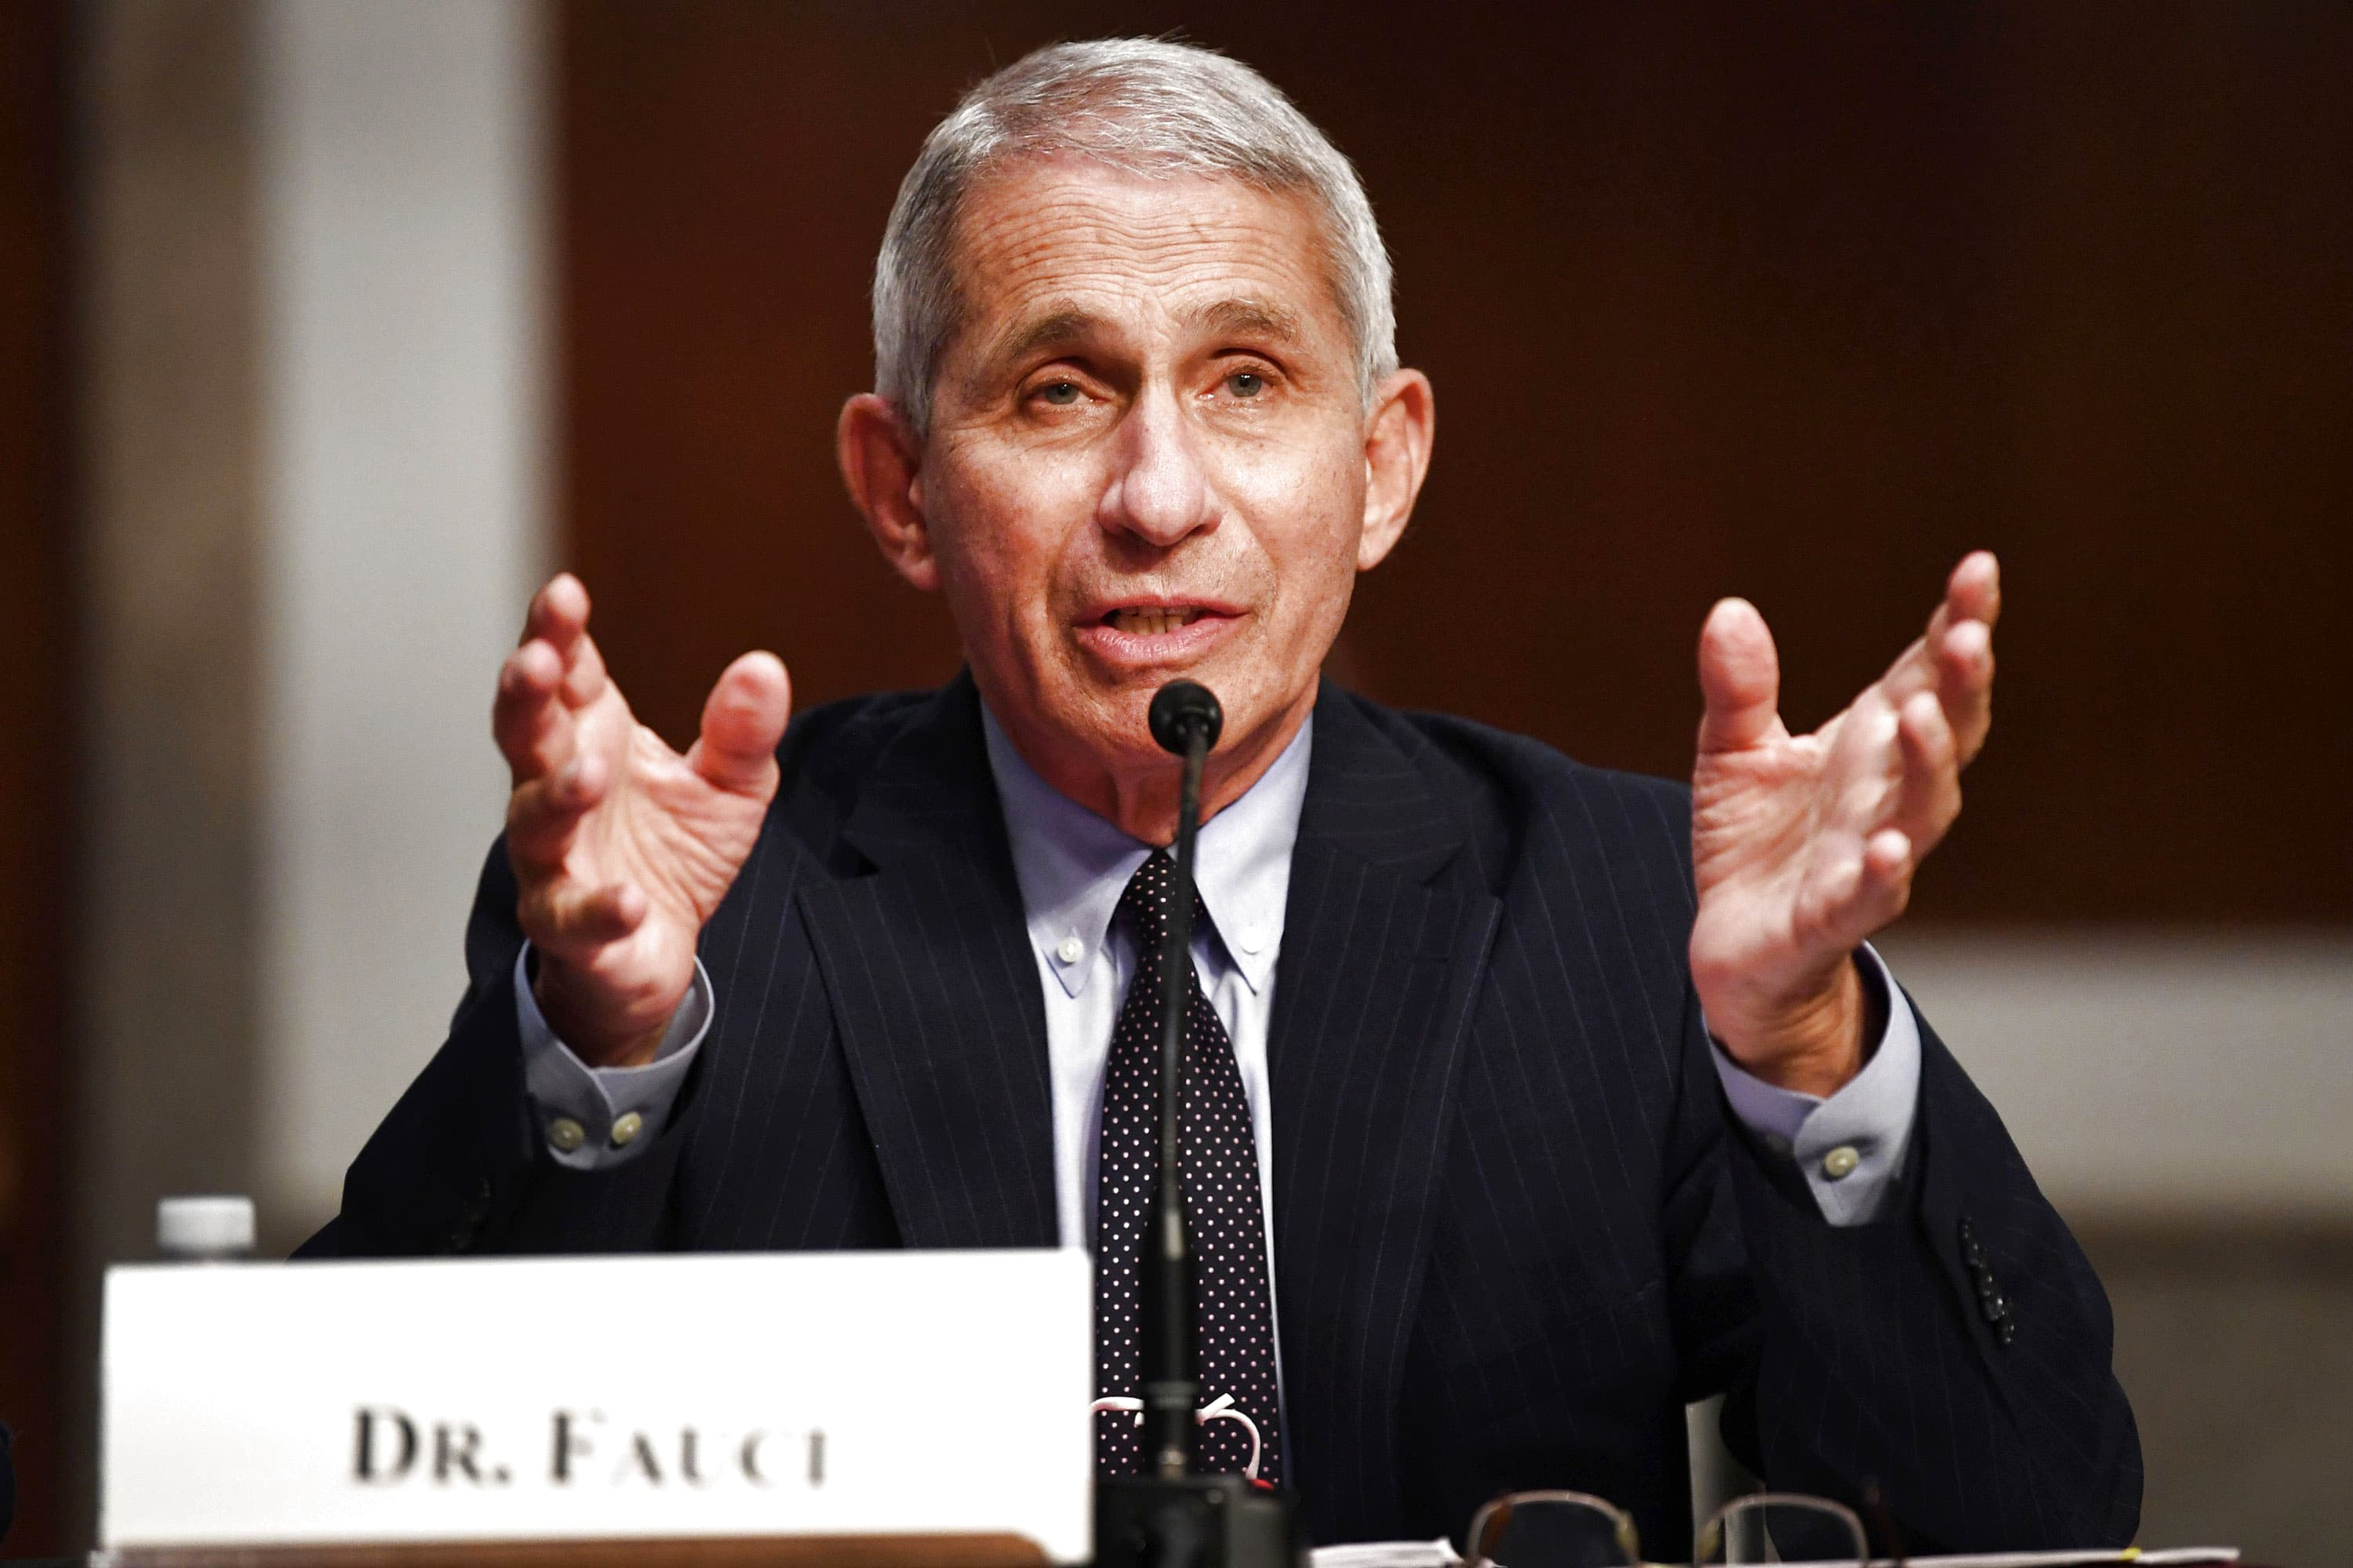 Dr. Fauci warns of a 'whole lot of pain' due to coronavirus pandemic in the coming months